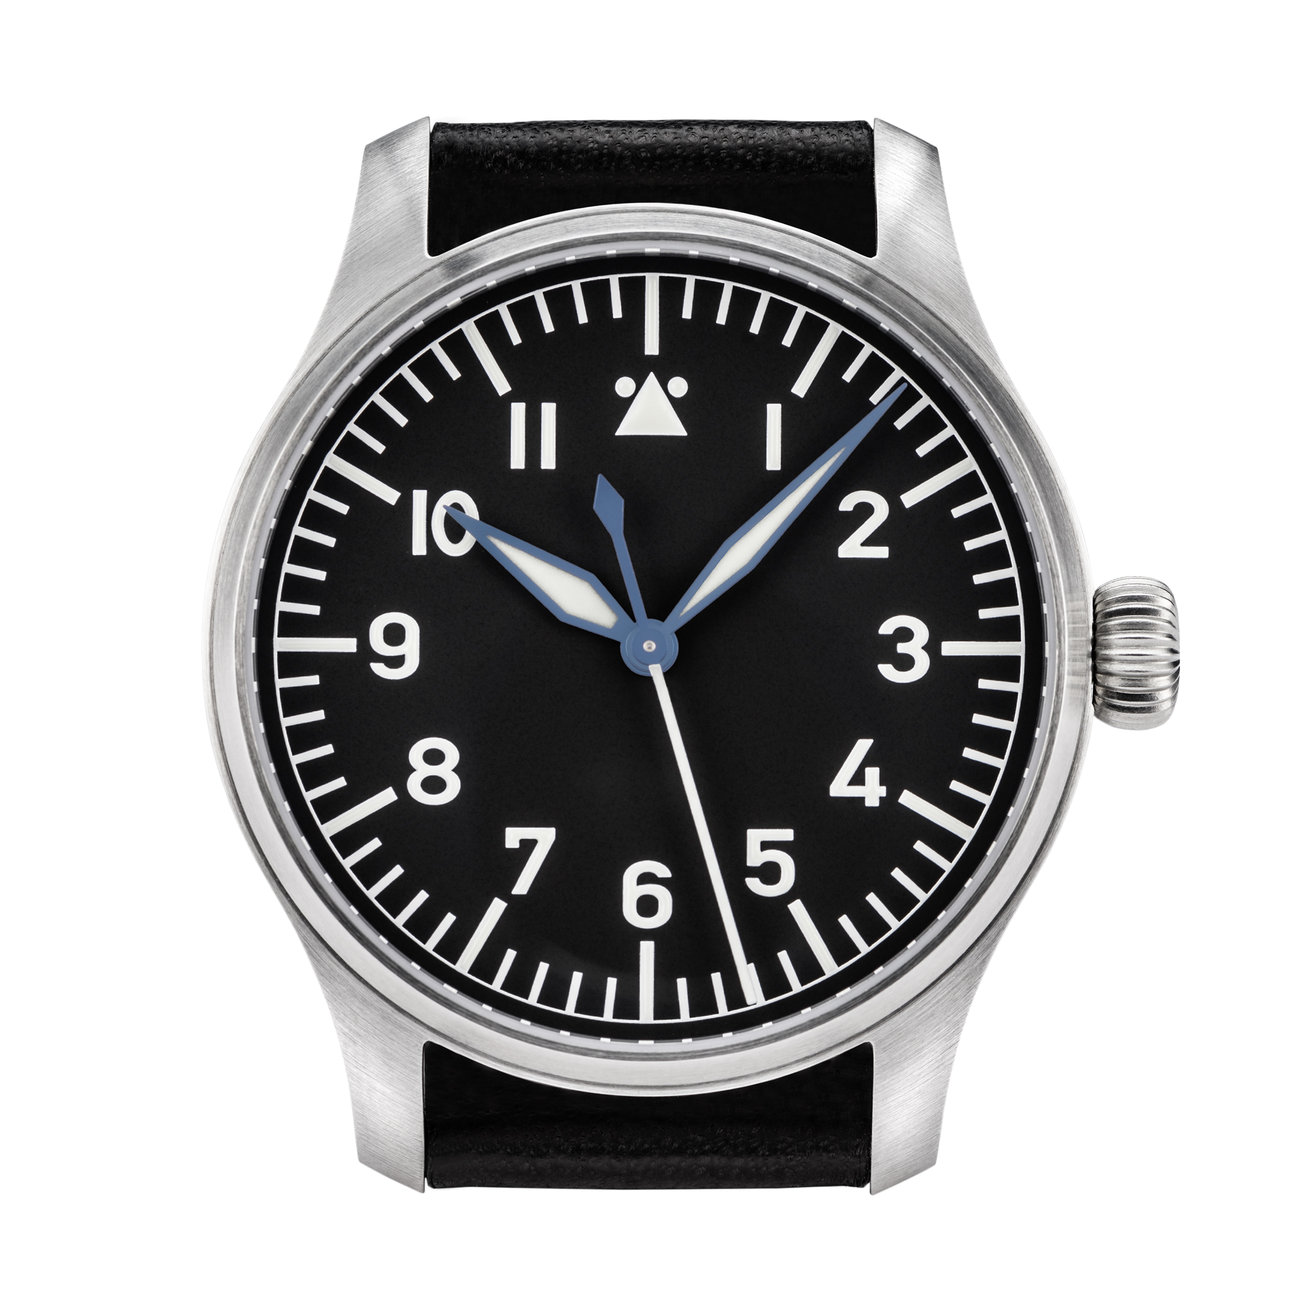 1d2cc8e5d4aa8 Flieger Friday  Everything You Need to Know About Flieger Watches ...